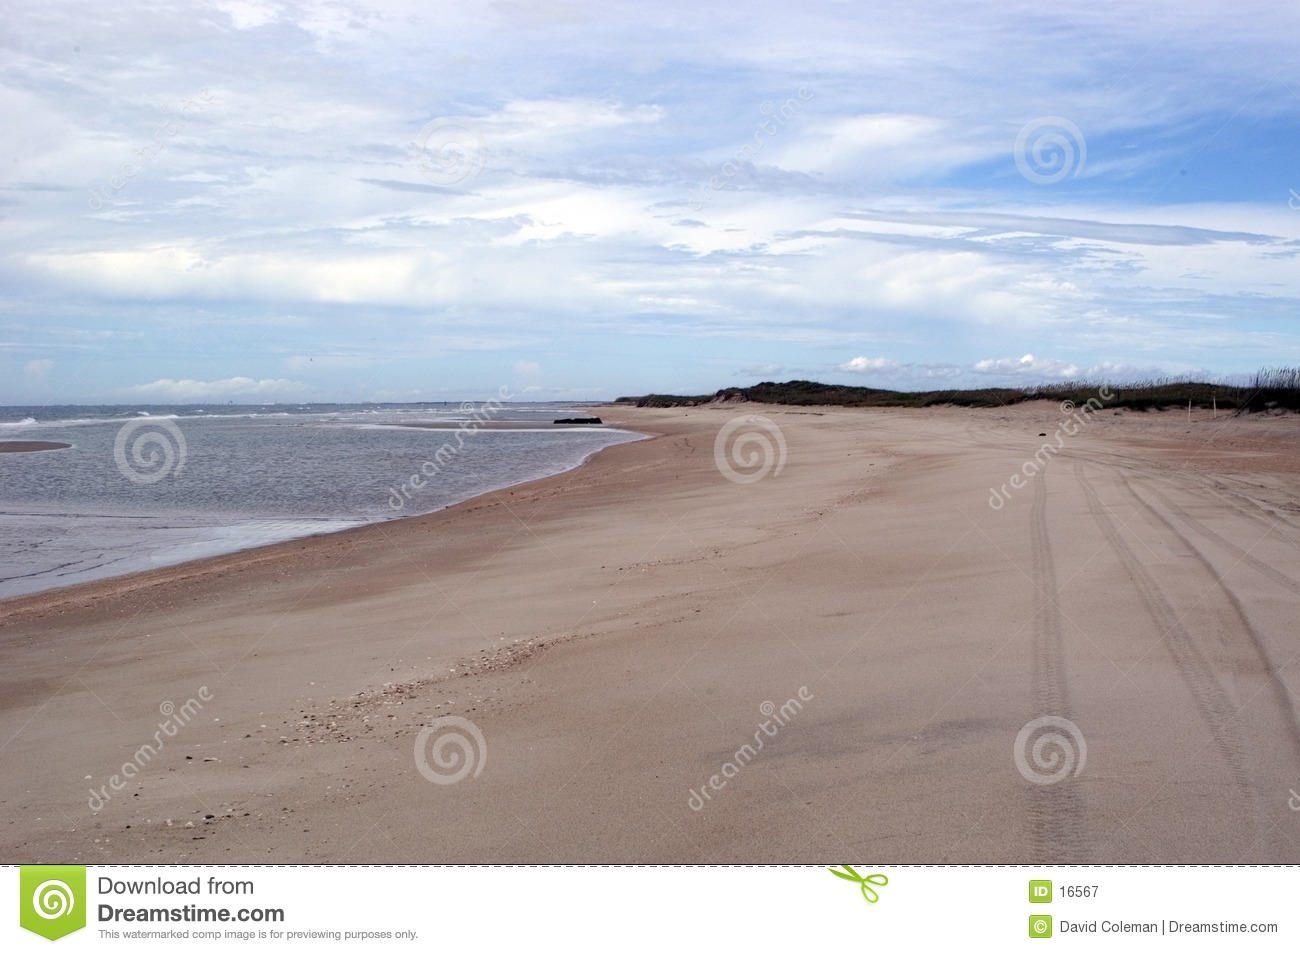 Beach View with Tire Tracks